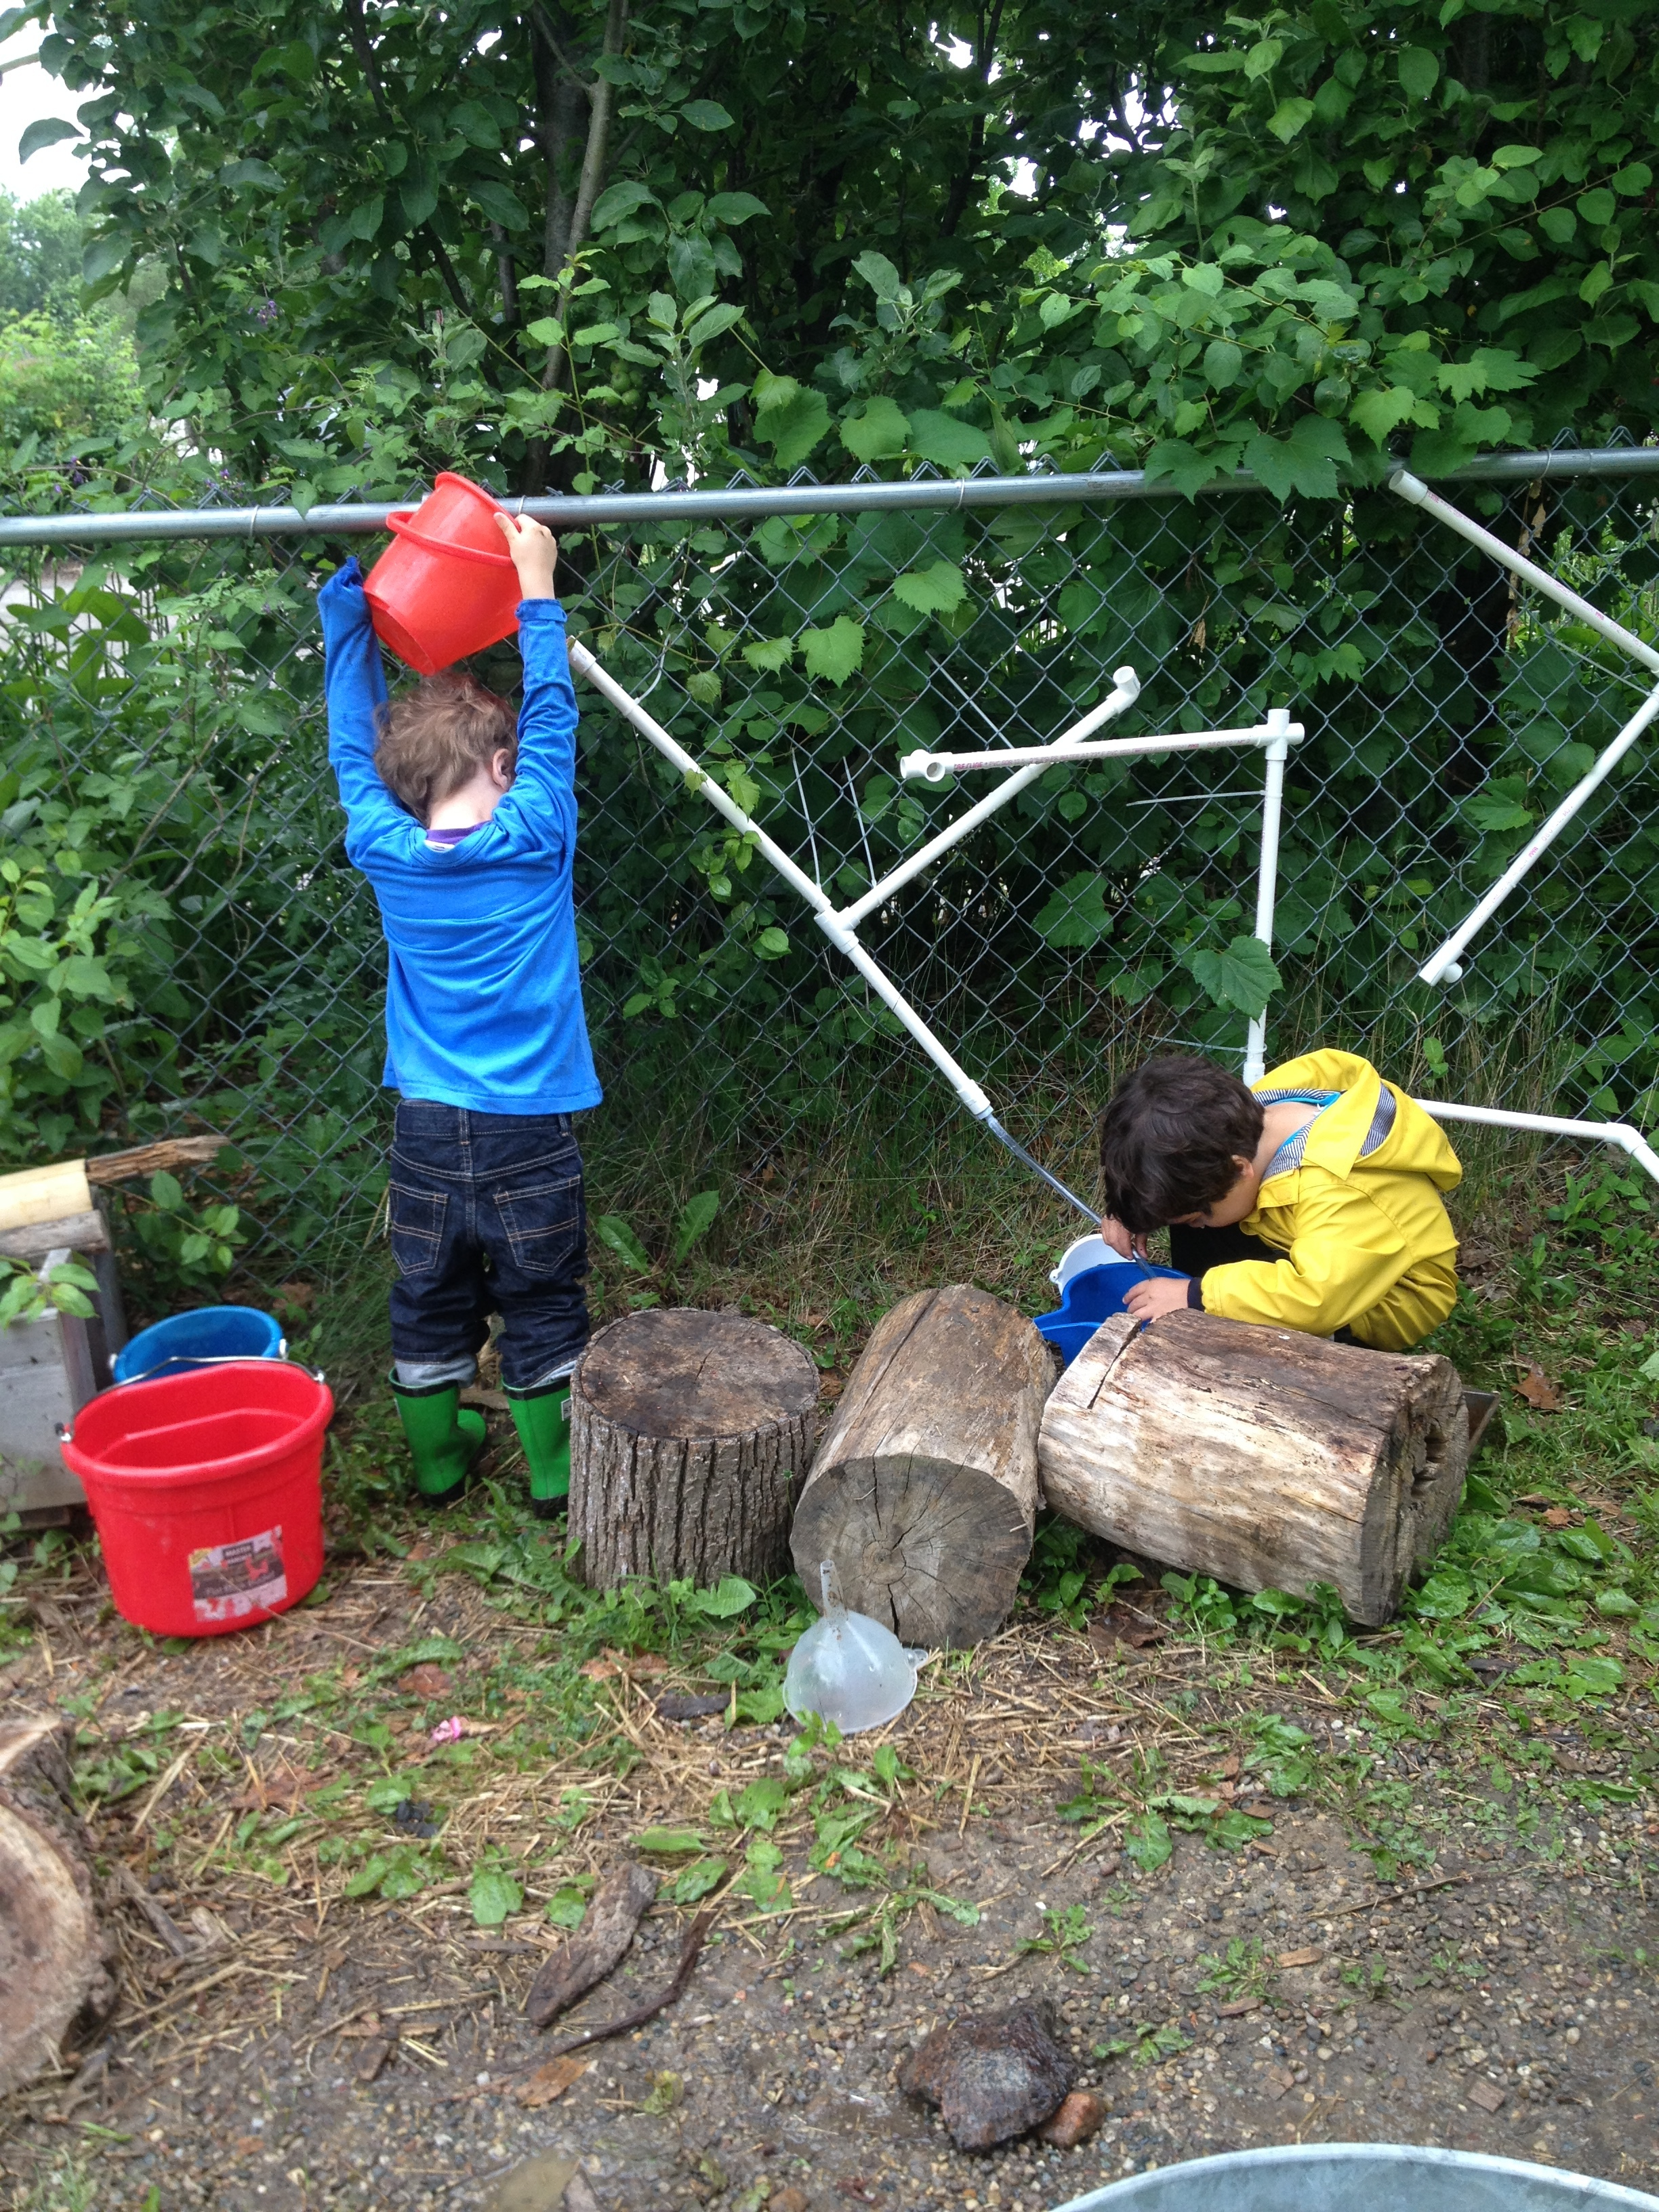 All of the water play promoted even more learning and cooperative play.